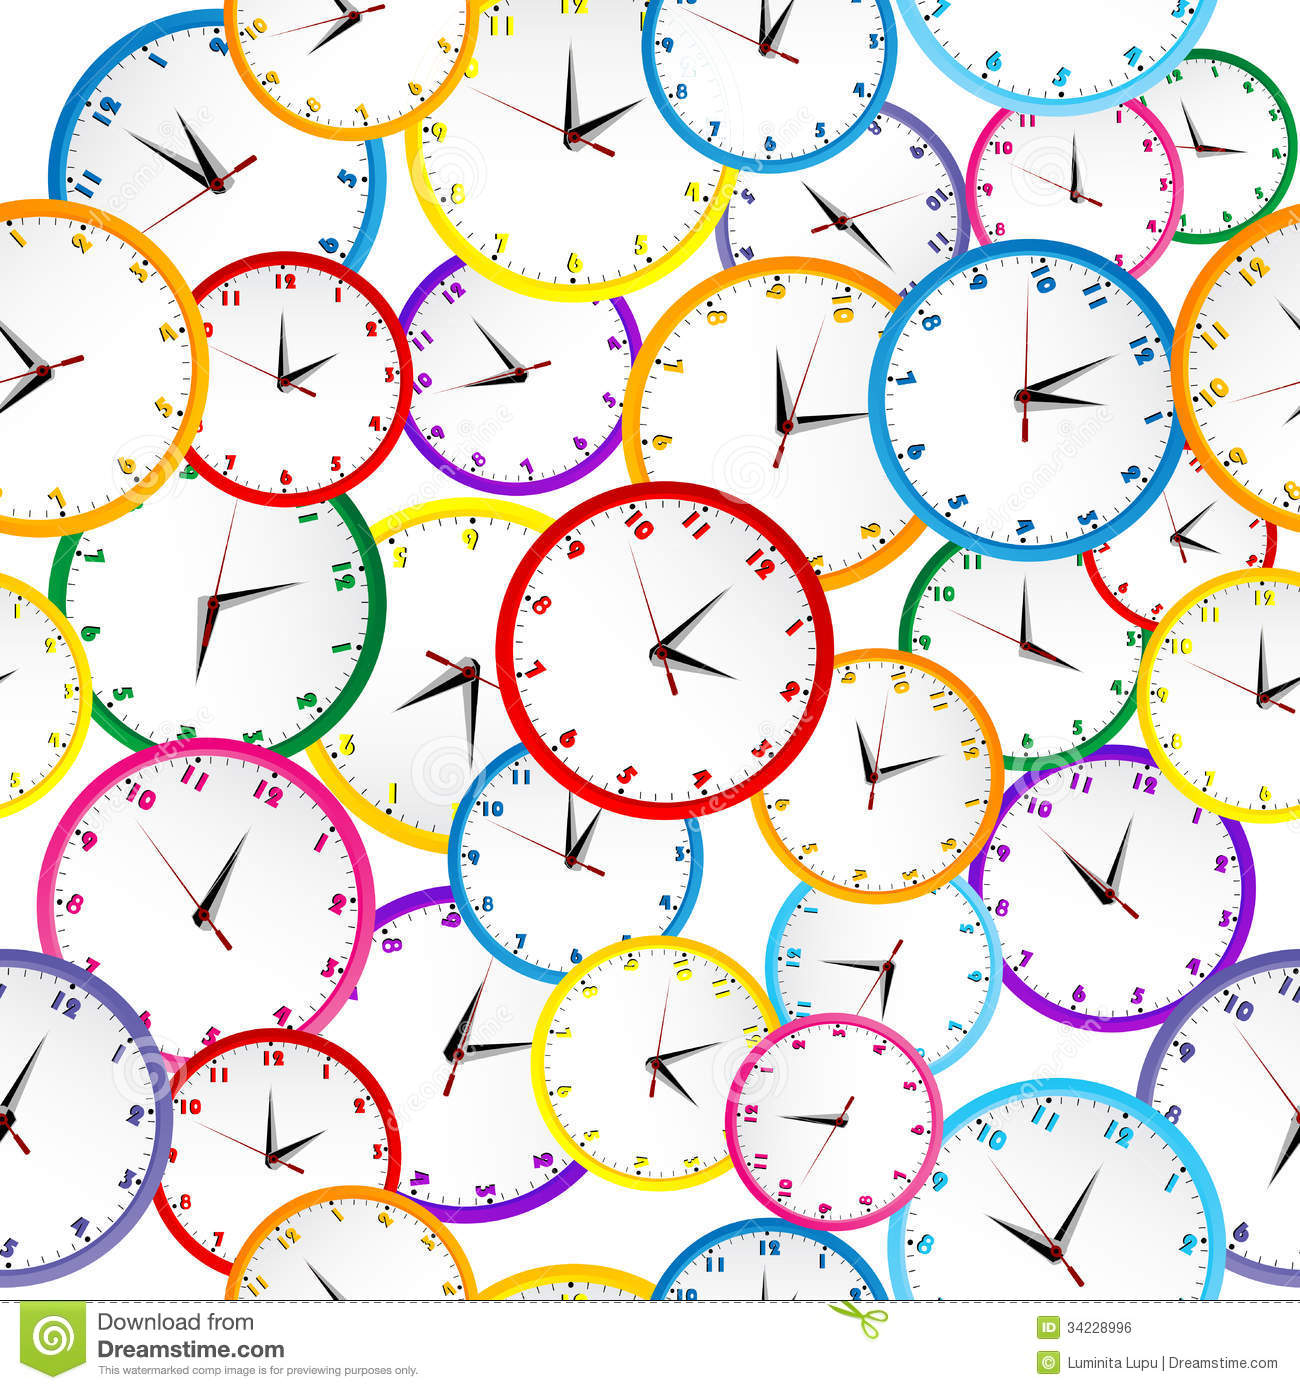 Calendar Wallpaper With Clock : Seamless pattern with colorful clocks stock illustration